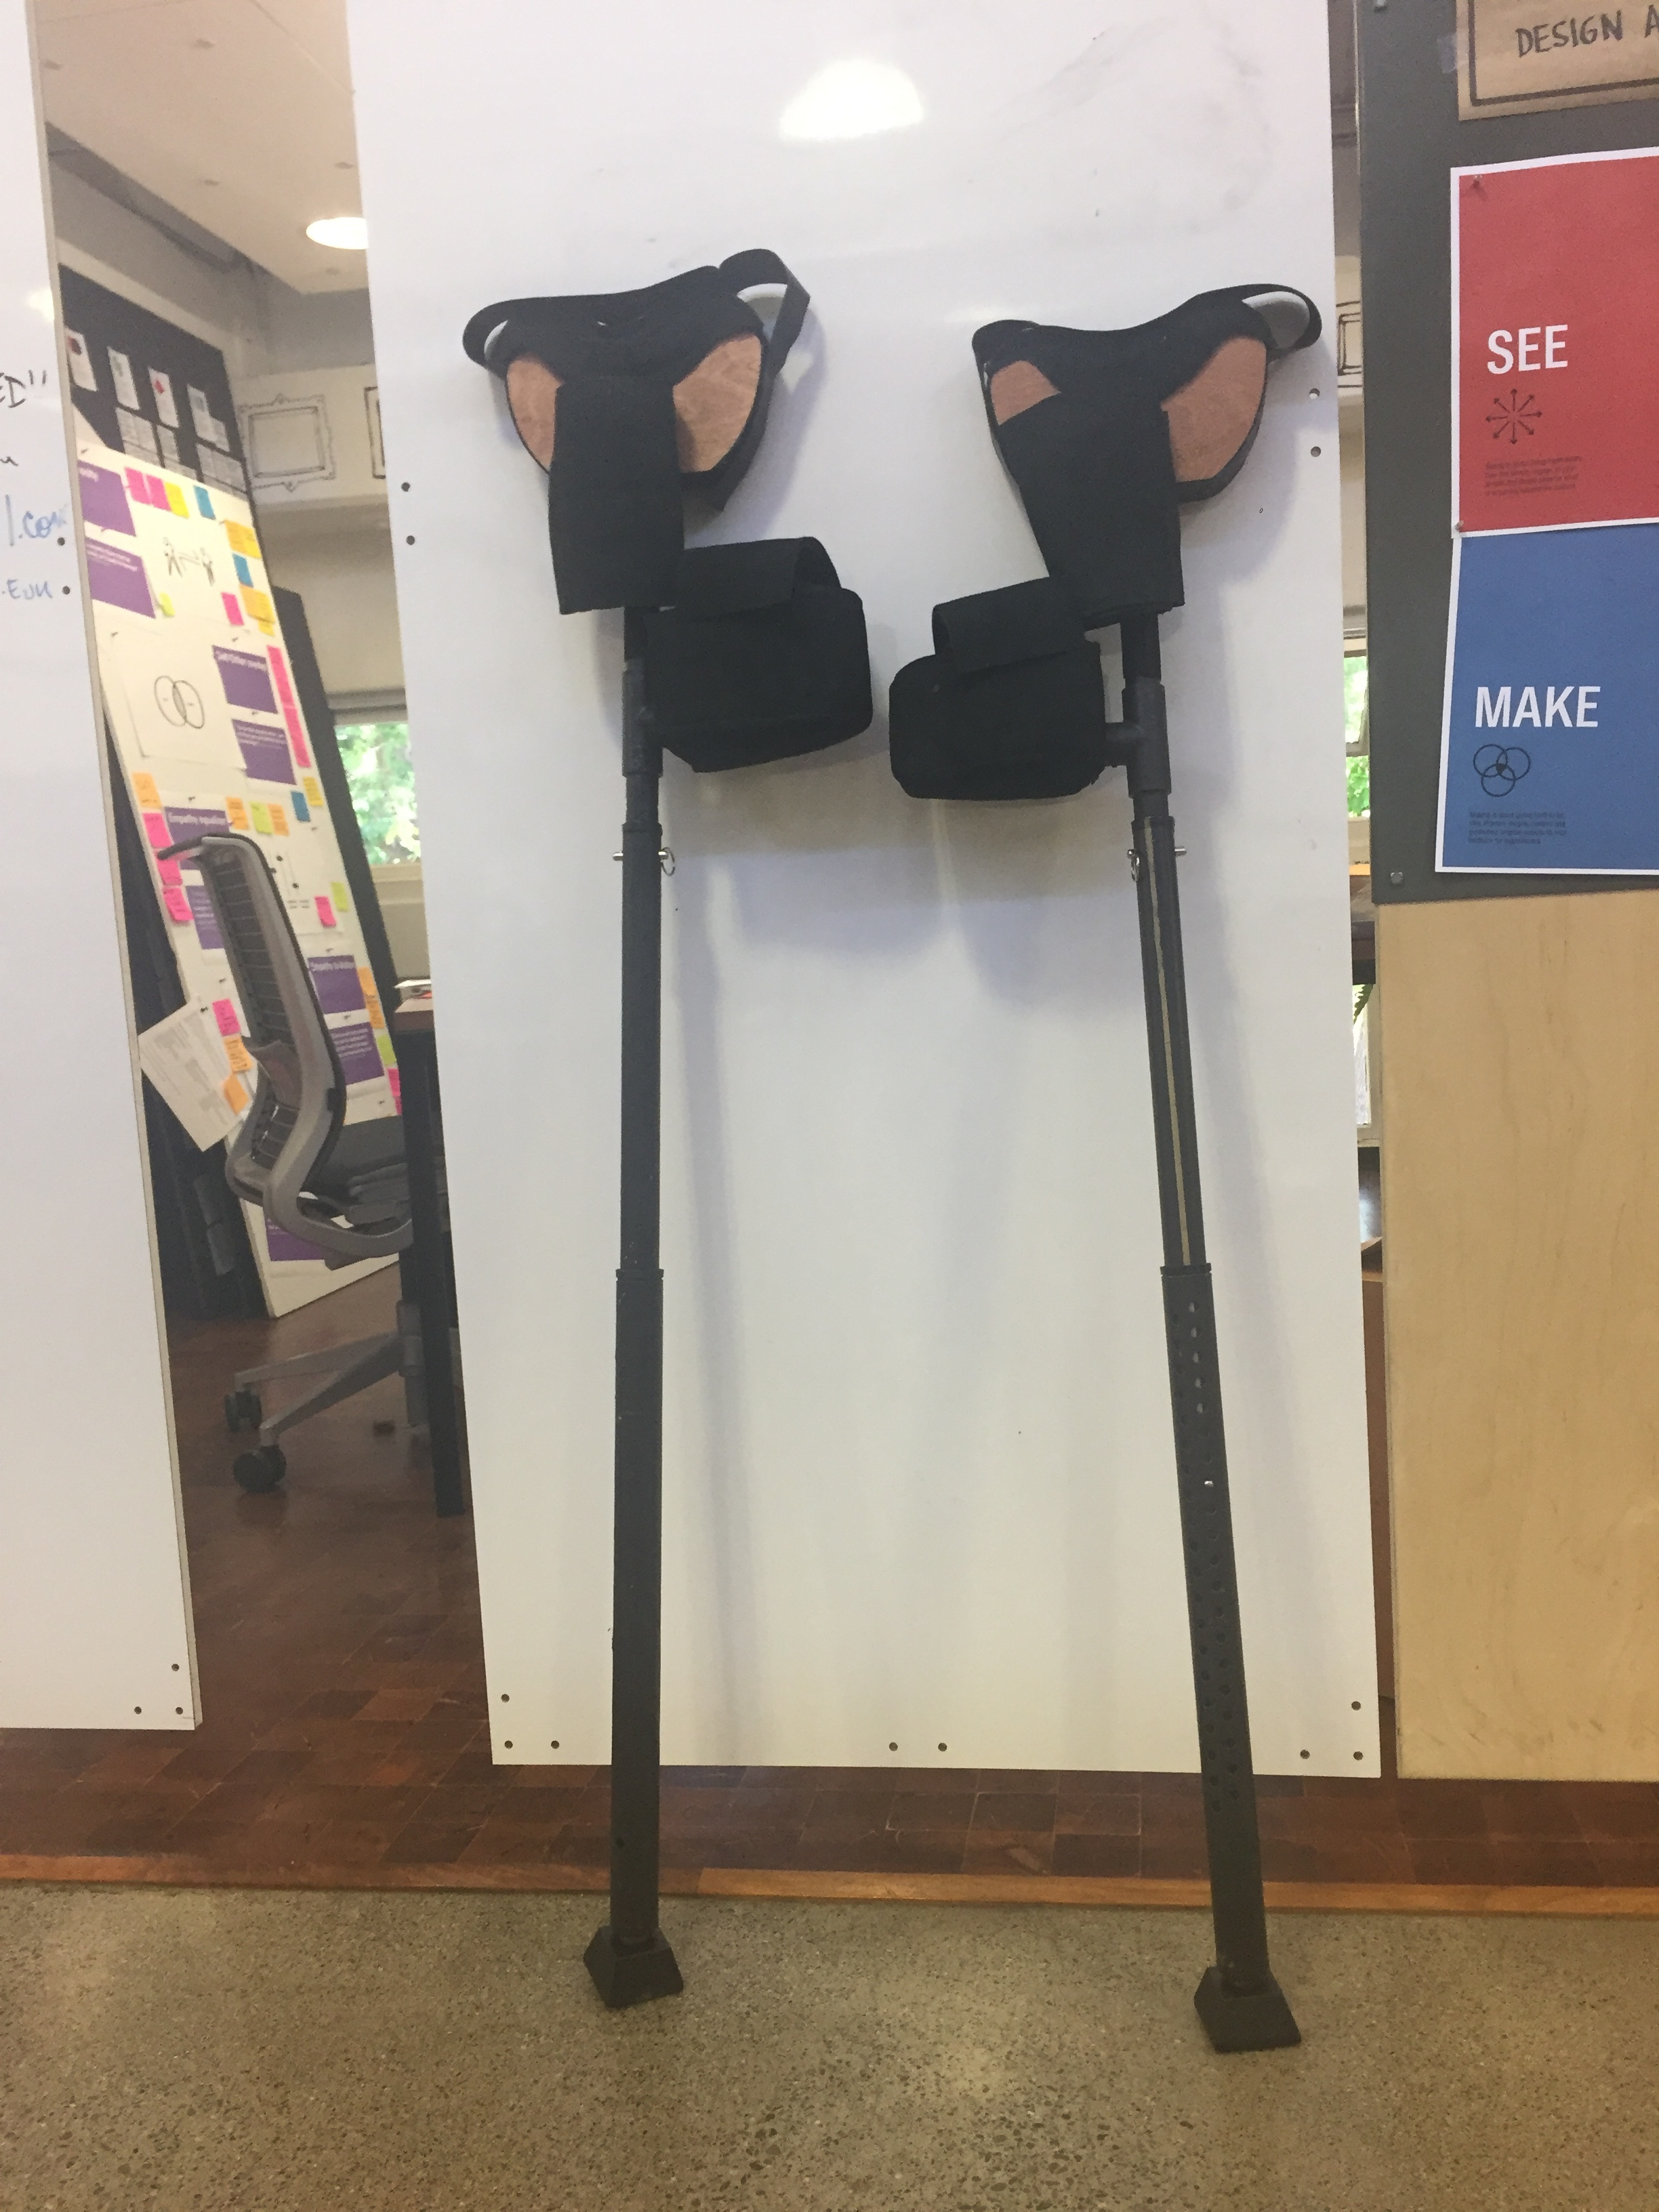 Two crutches